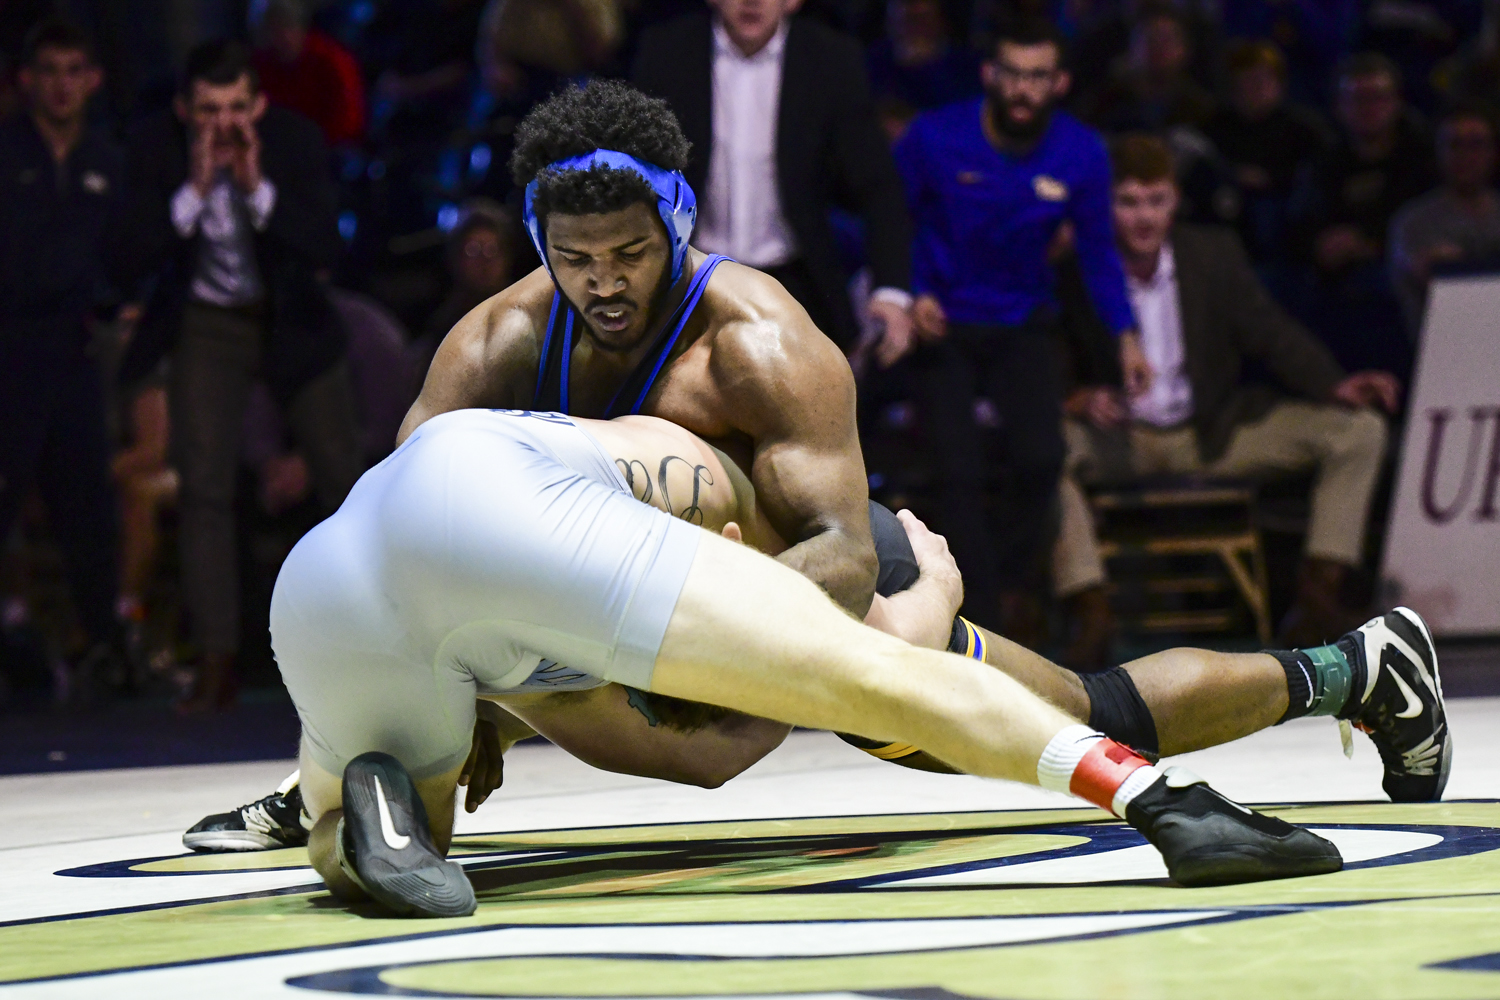 Junior Demetrius Thomas, pictured here against North Carolina on Feb. 2, won his match against Deonte Wilson of NC State and helped Pitt wrestling break their 3-match losing streak.